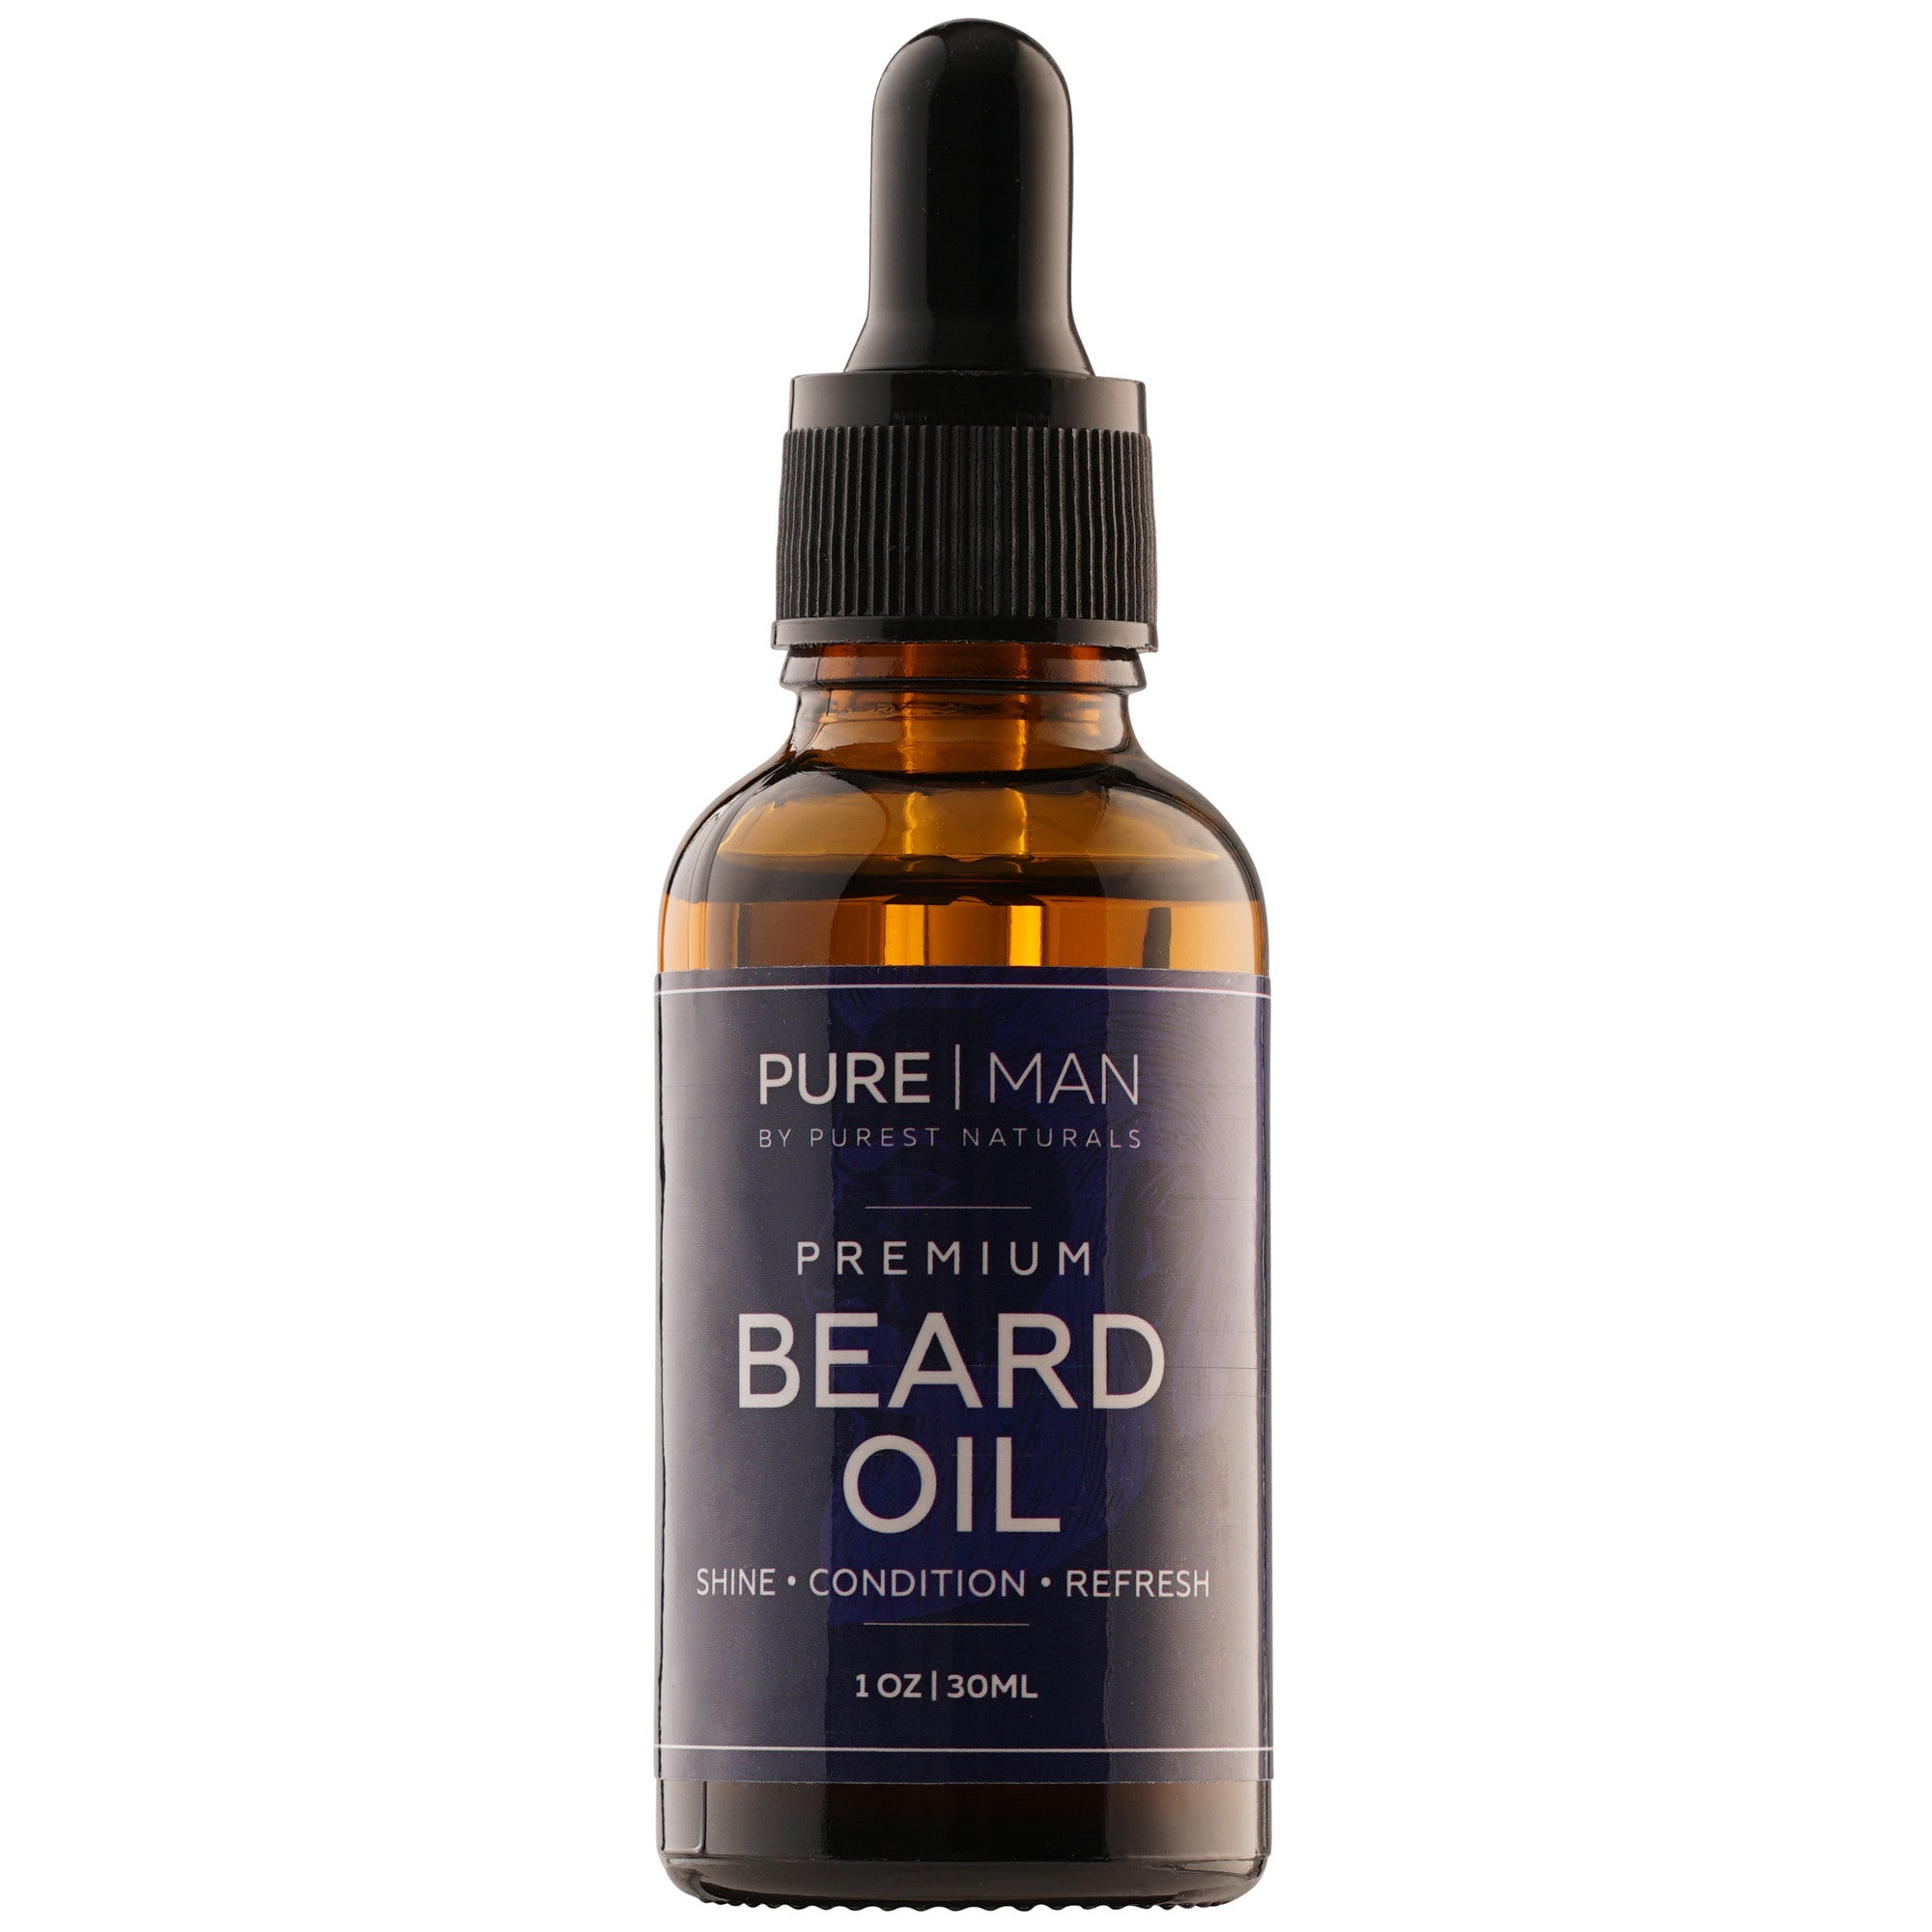 Purest Naturals Organic Beard Oil & Leave-In Conditioner -100% Natural - Best For Groomed Beard Growth, Mustache - Softens & Hydrates Your Beard, Skin & Hair - Stops Itching & Treats Acne